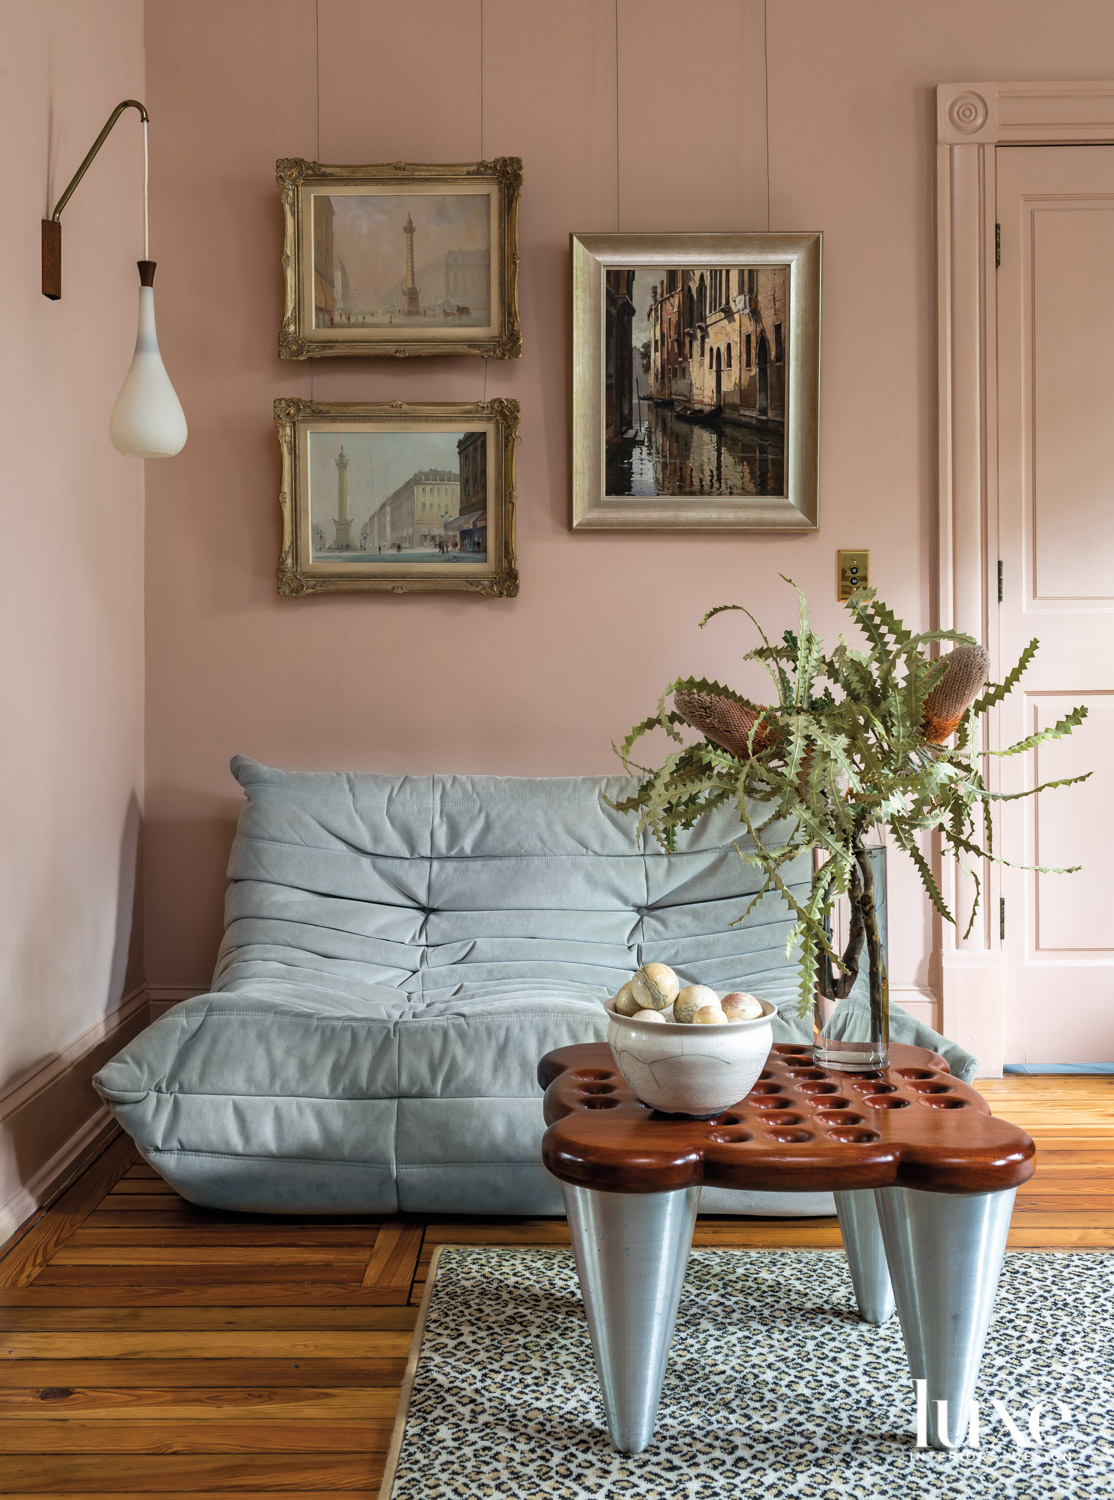 Sitting nook with blush-colored walls...